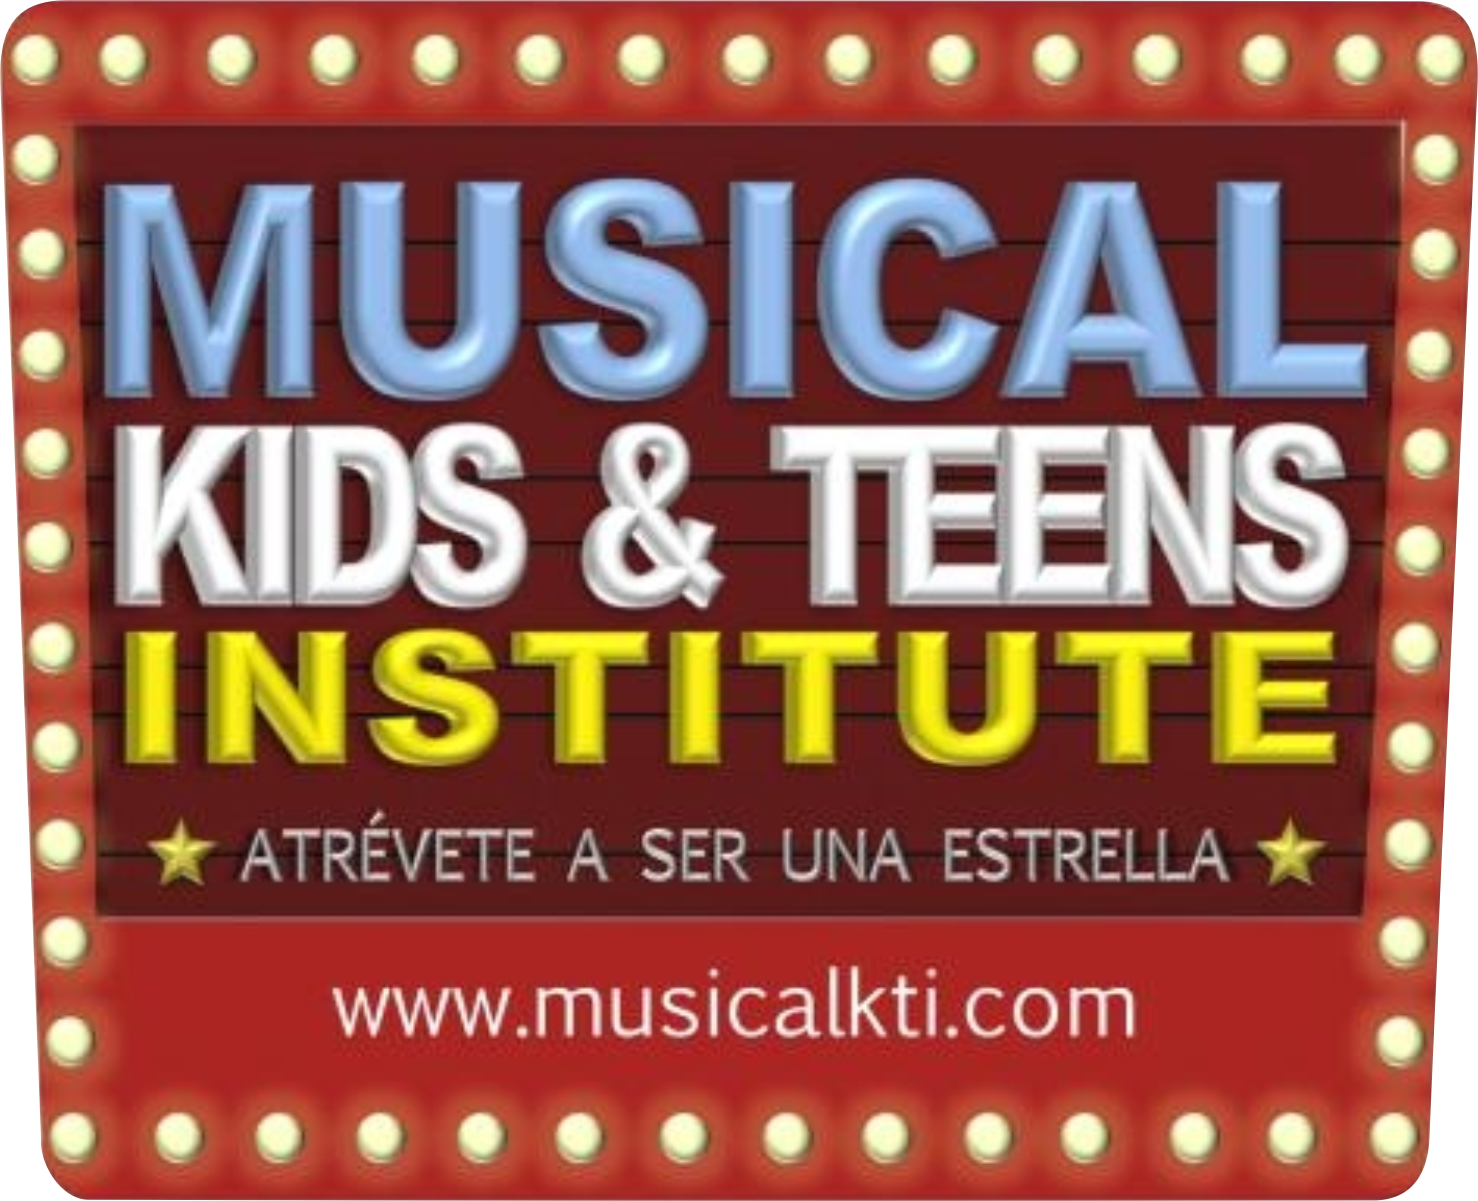 MUSICAL KIDS & TEENS INSTITUTE